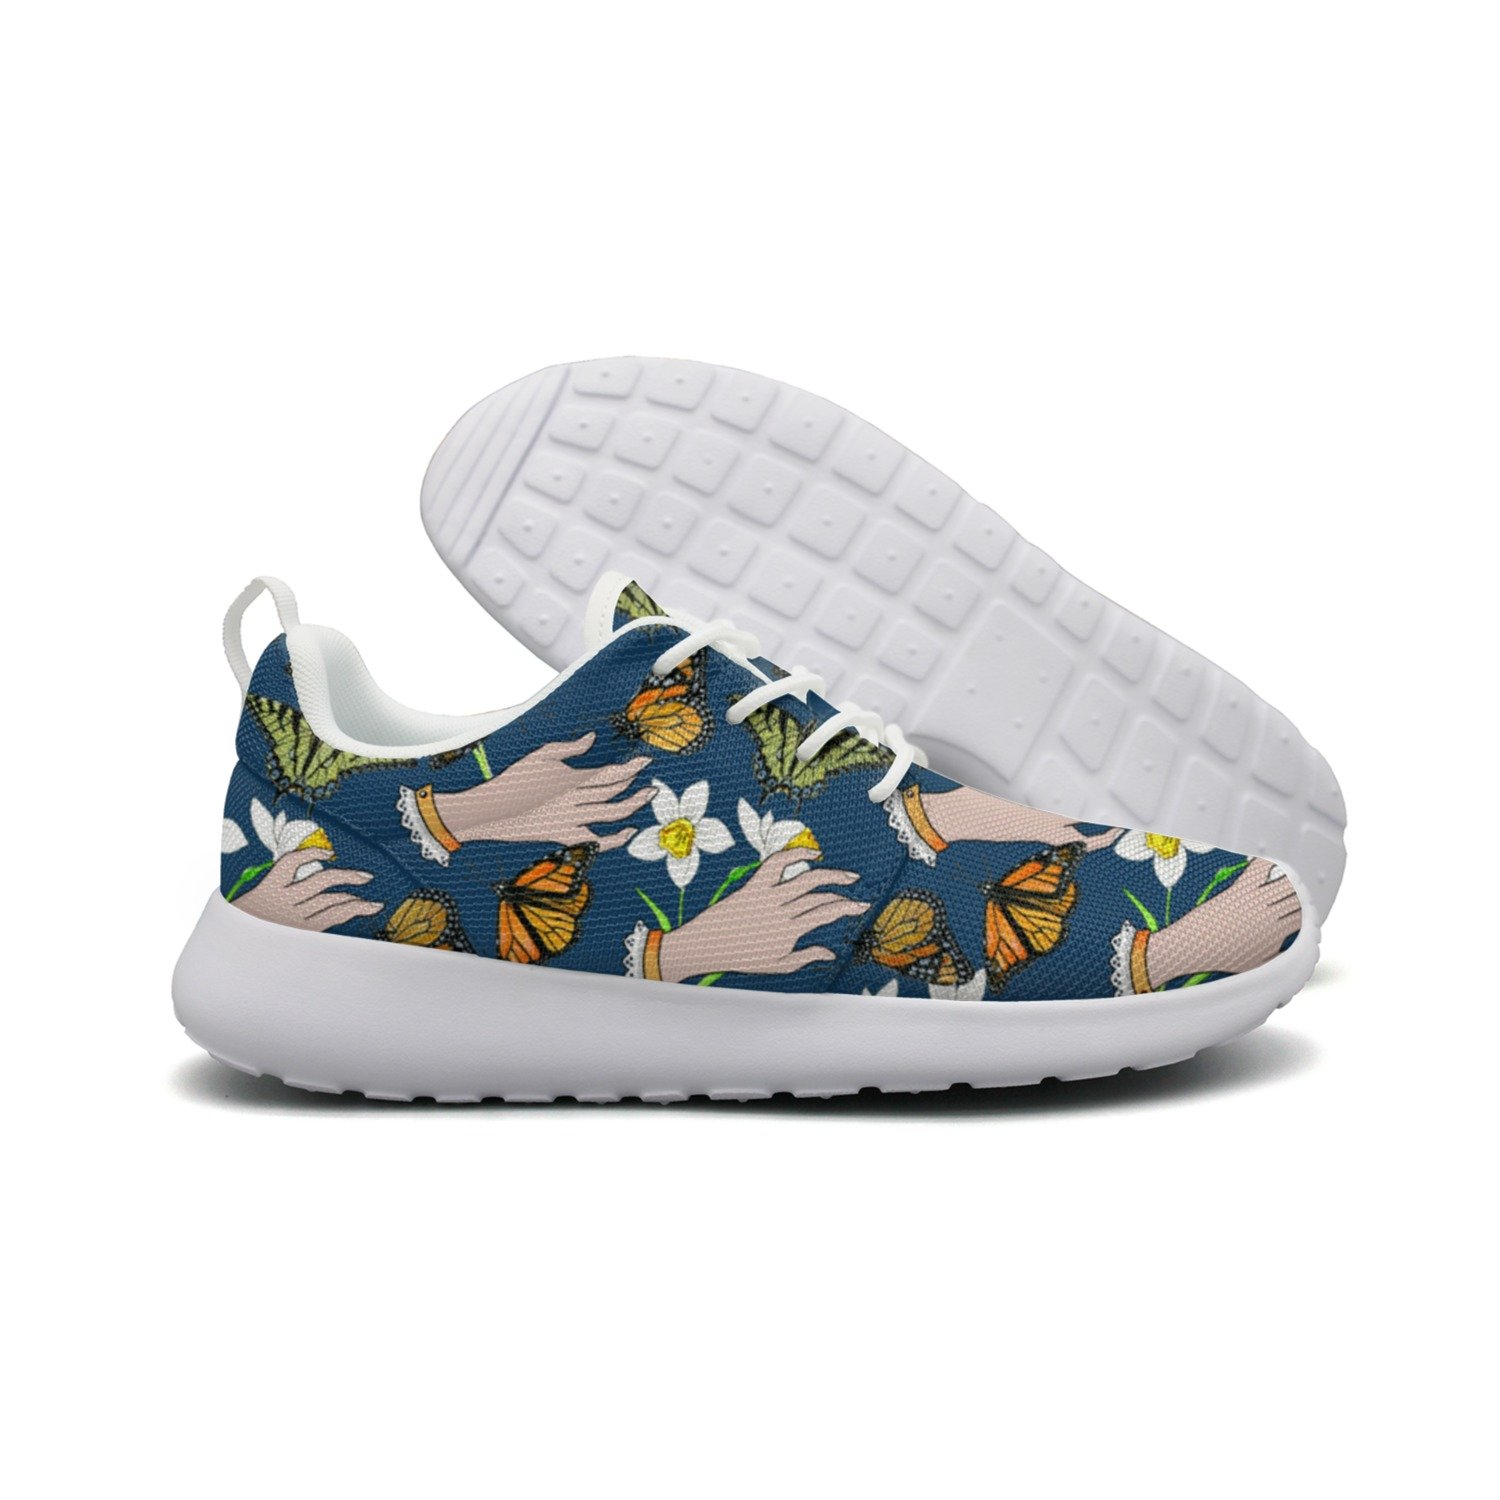 I Stroked Flowers And Butterflies Woman's Net Sports Running Shoes Hunting Colorful